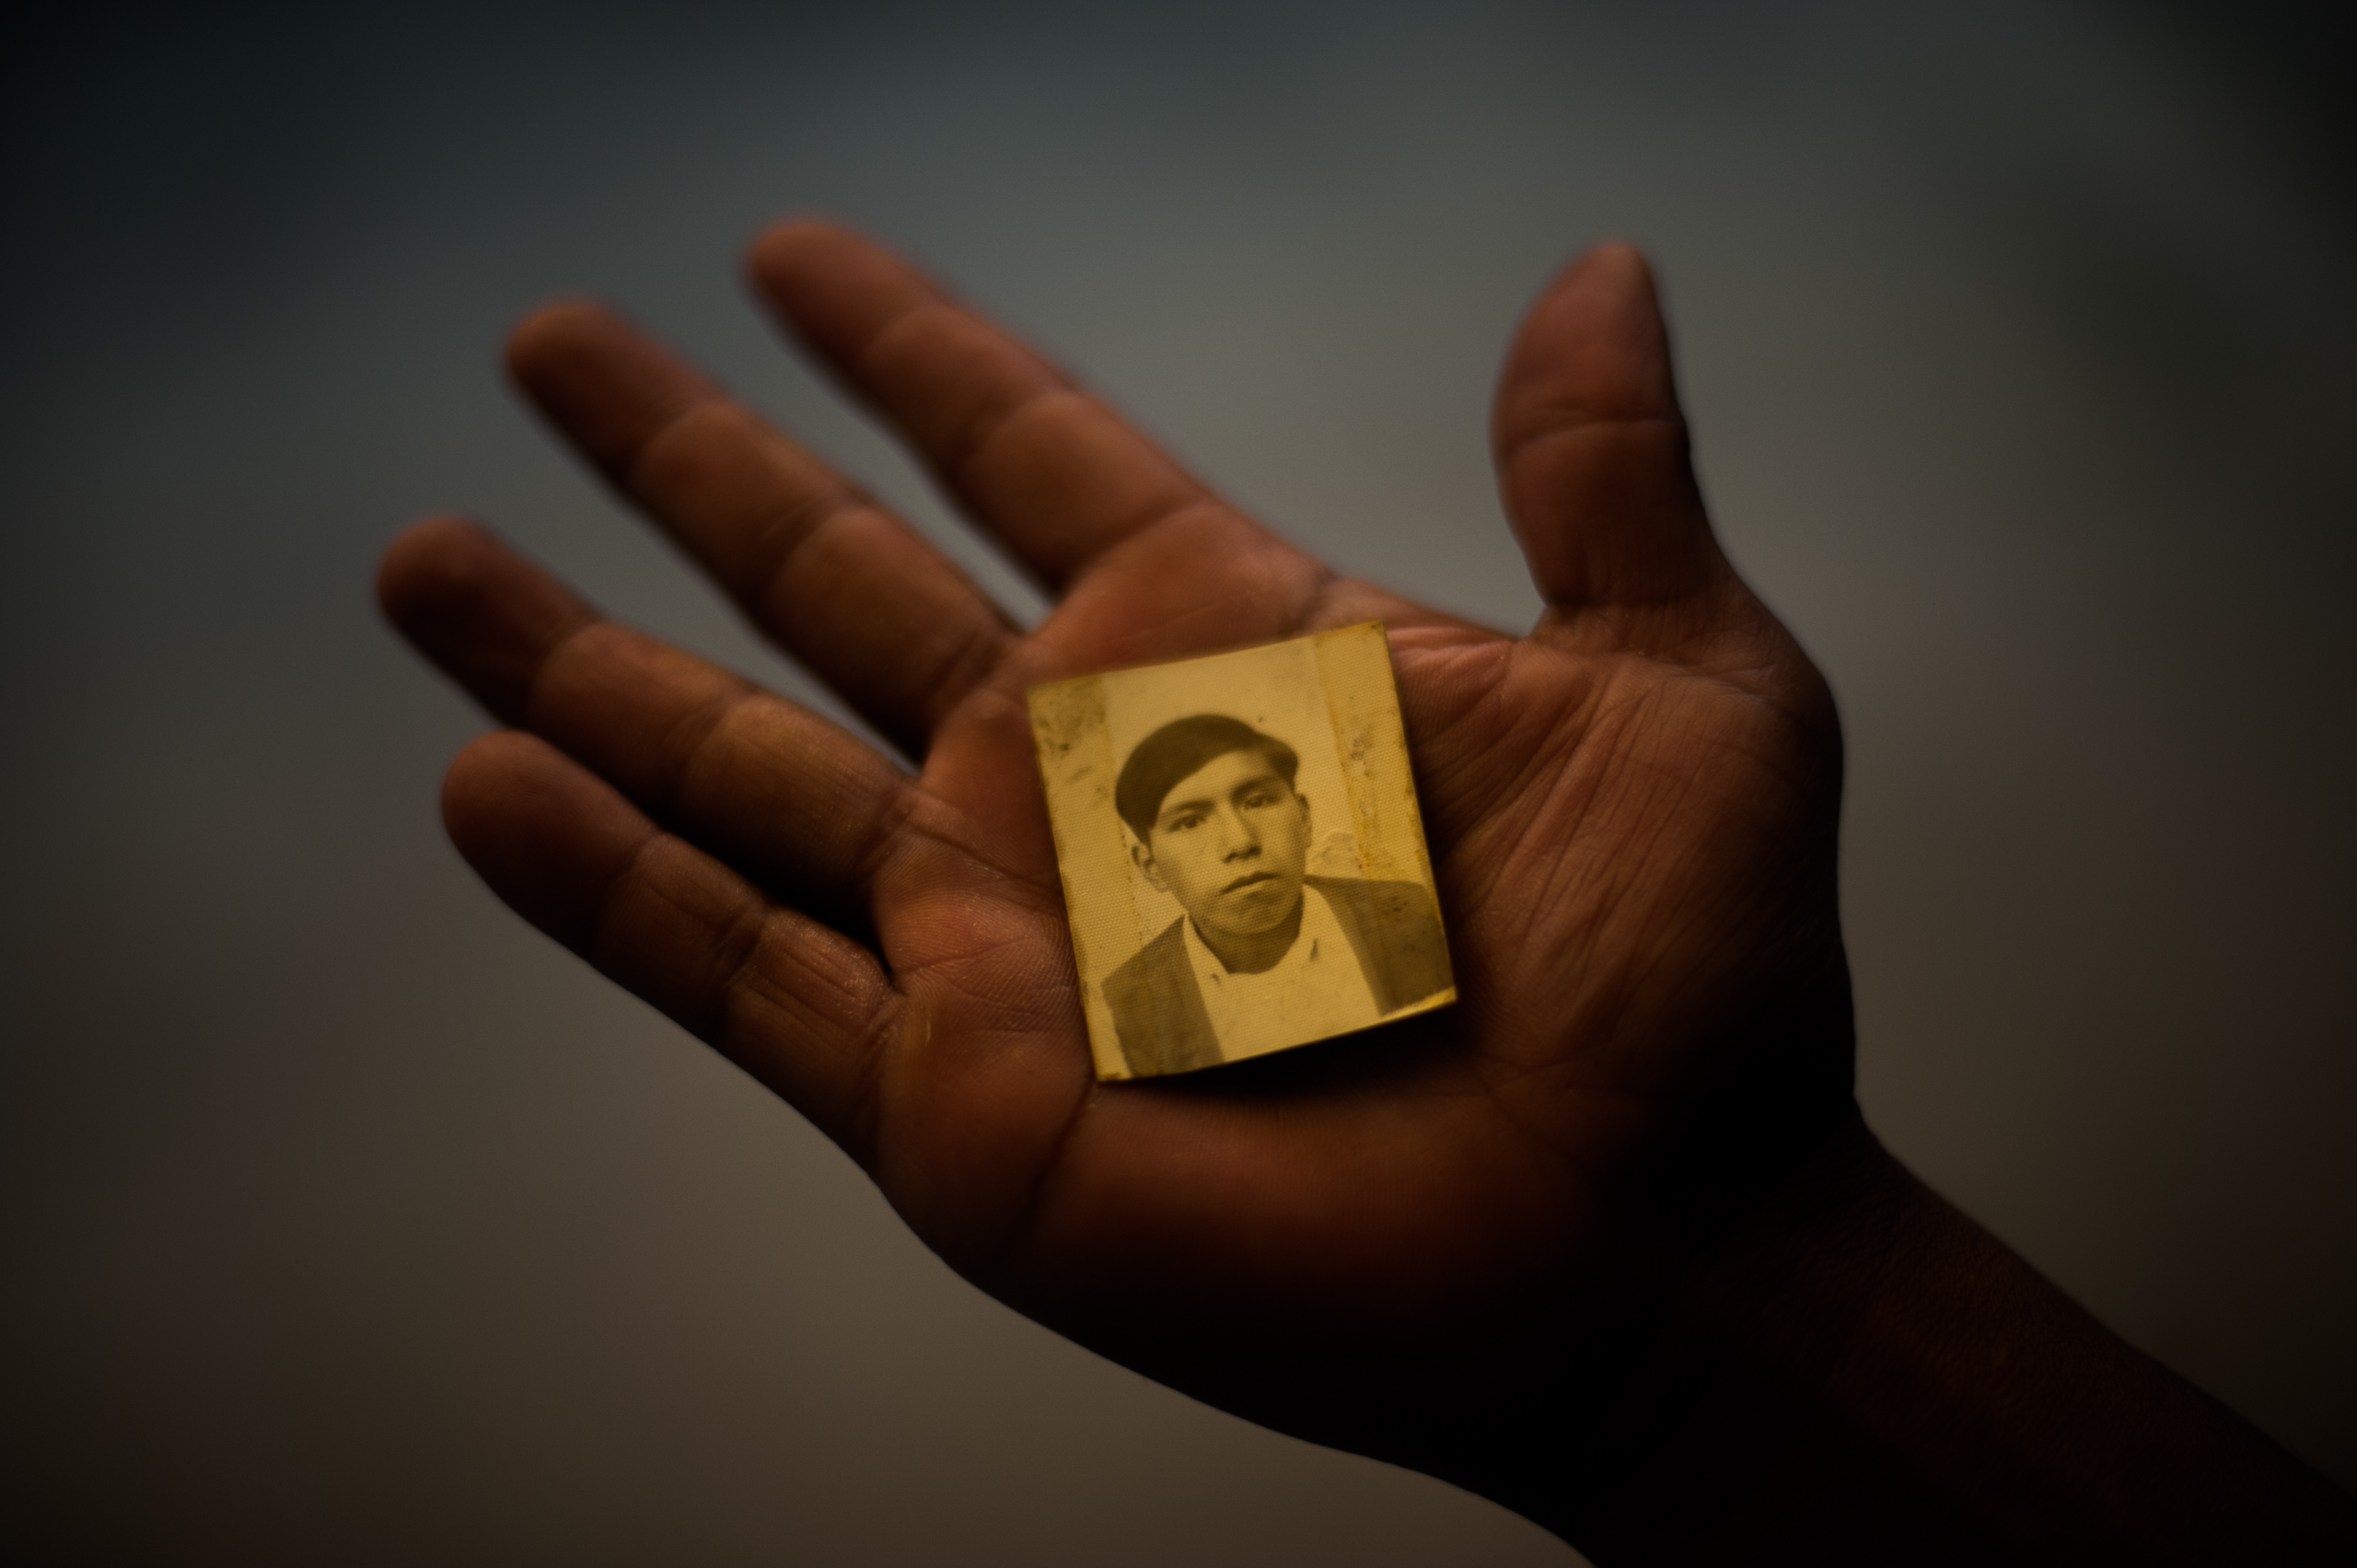 Miguel Terraza Raimundo, 27. Shot by the Army in Vicalamá village, while he tried to escape with his family on January 22, 1983.